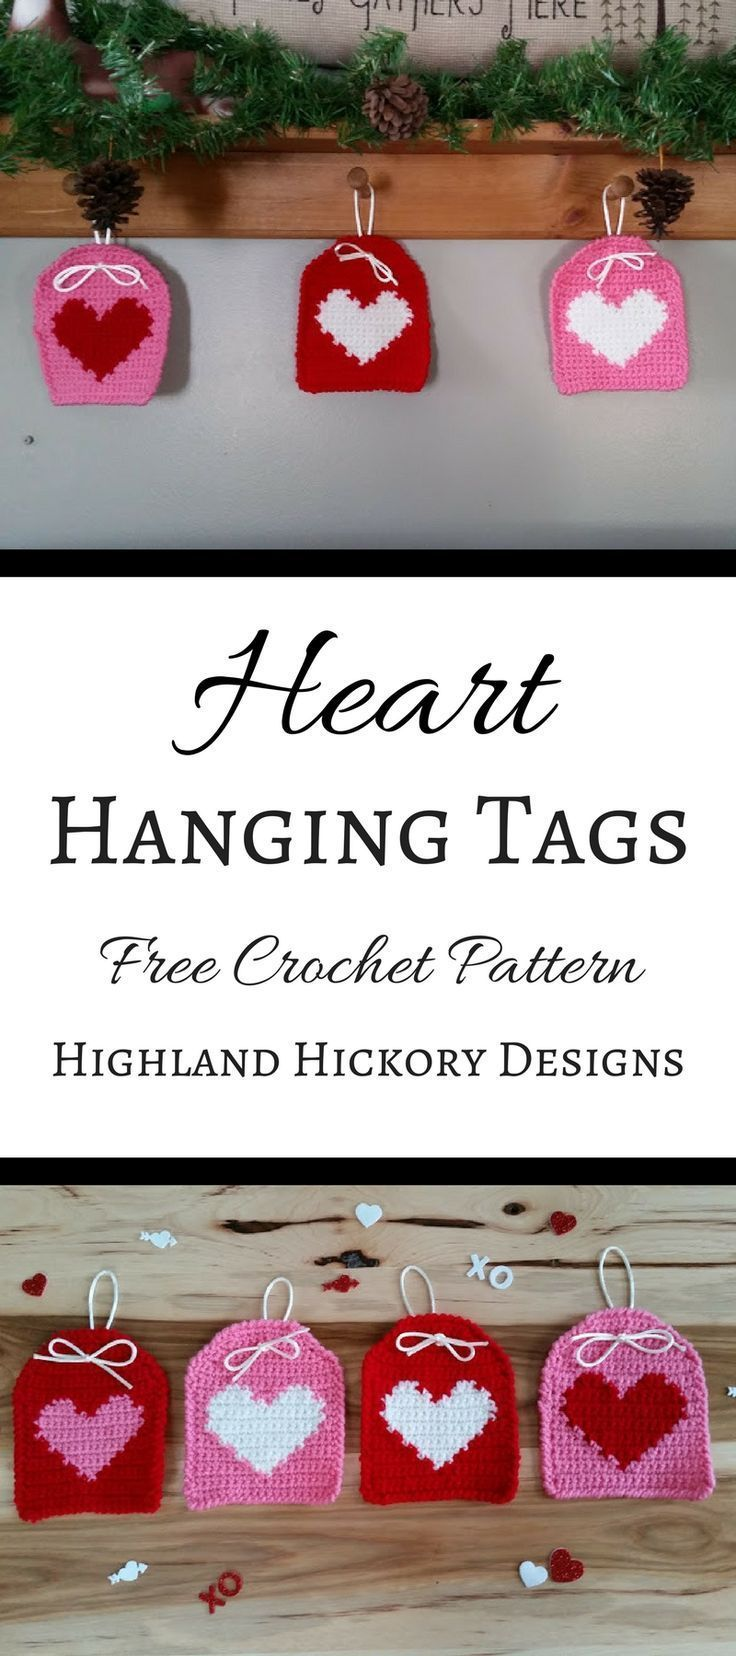 Hanging tags #CrochetValentines | crochet patterns | Pinterest | Mimos